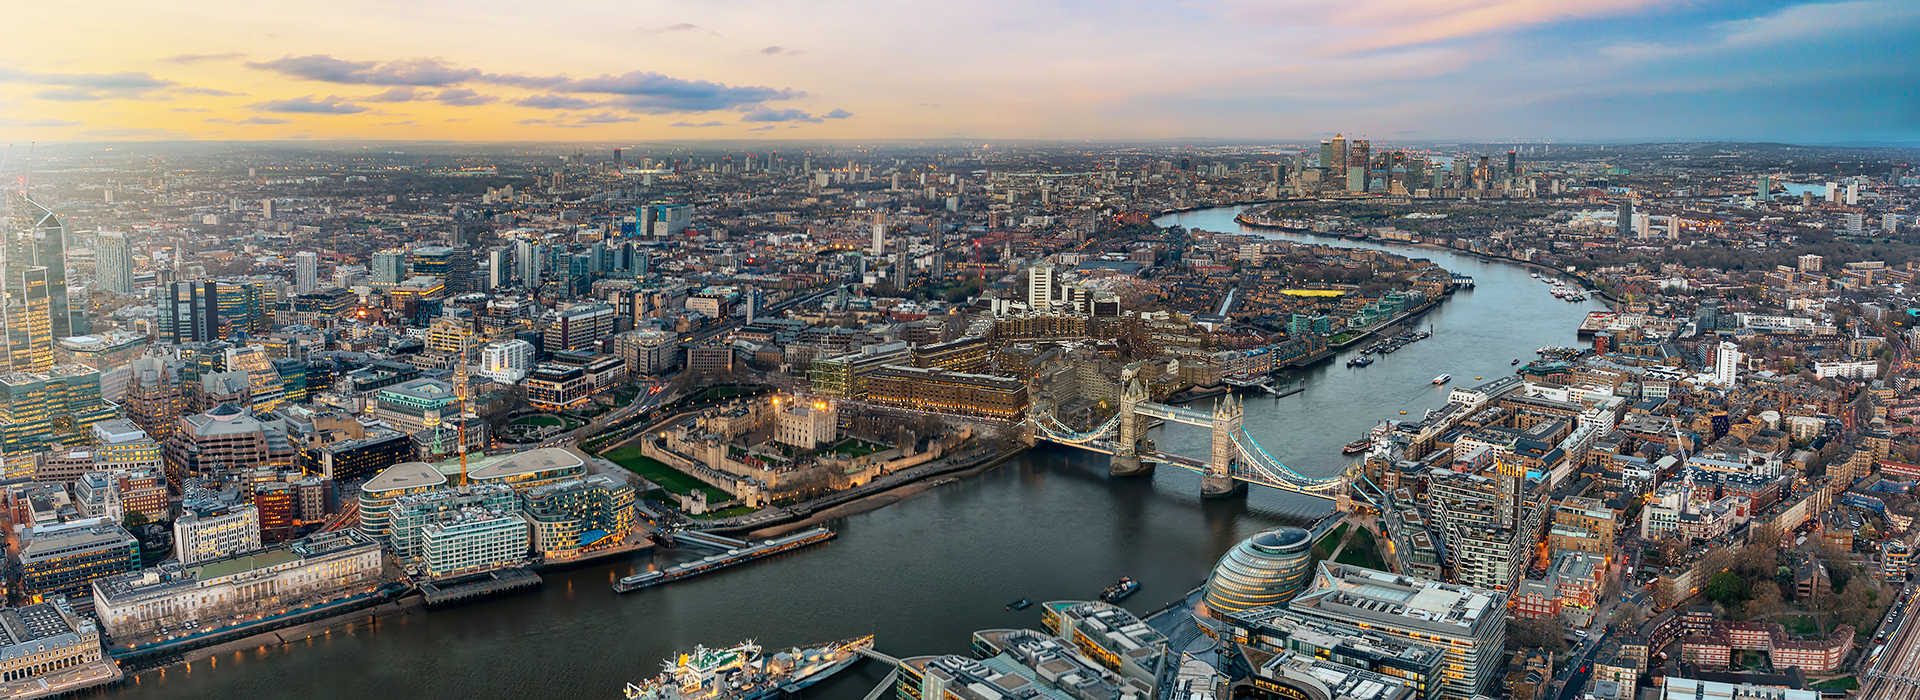 Apply for UK Innovator Visa and Obtain ILR in 3 years